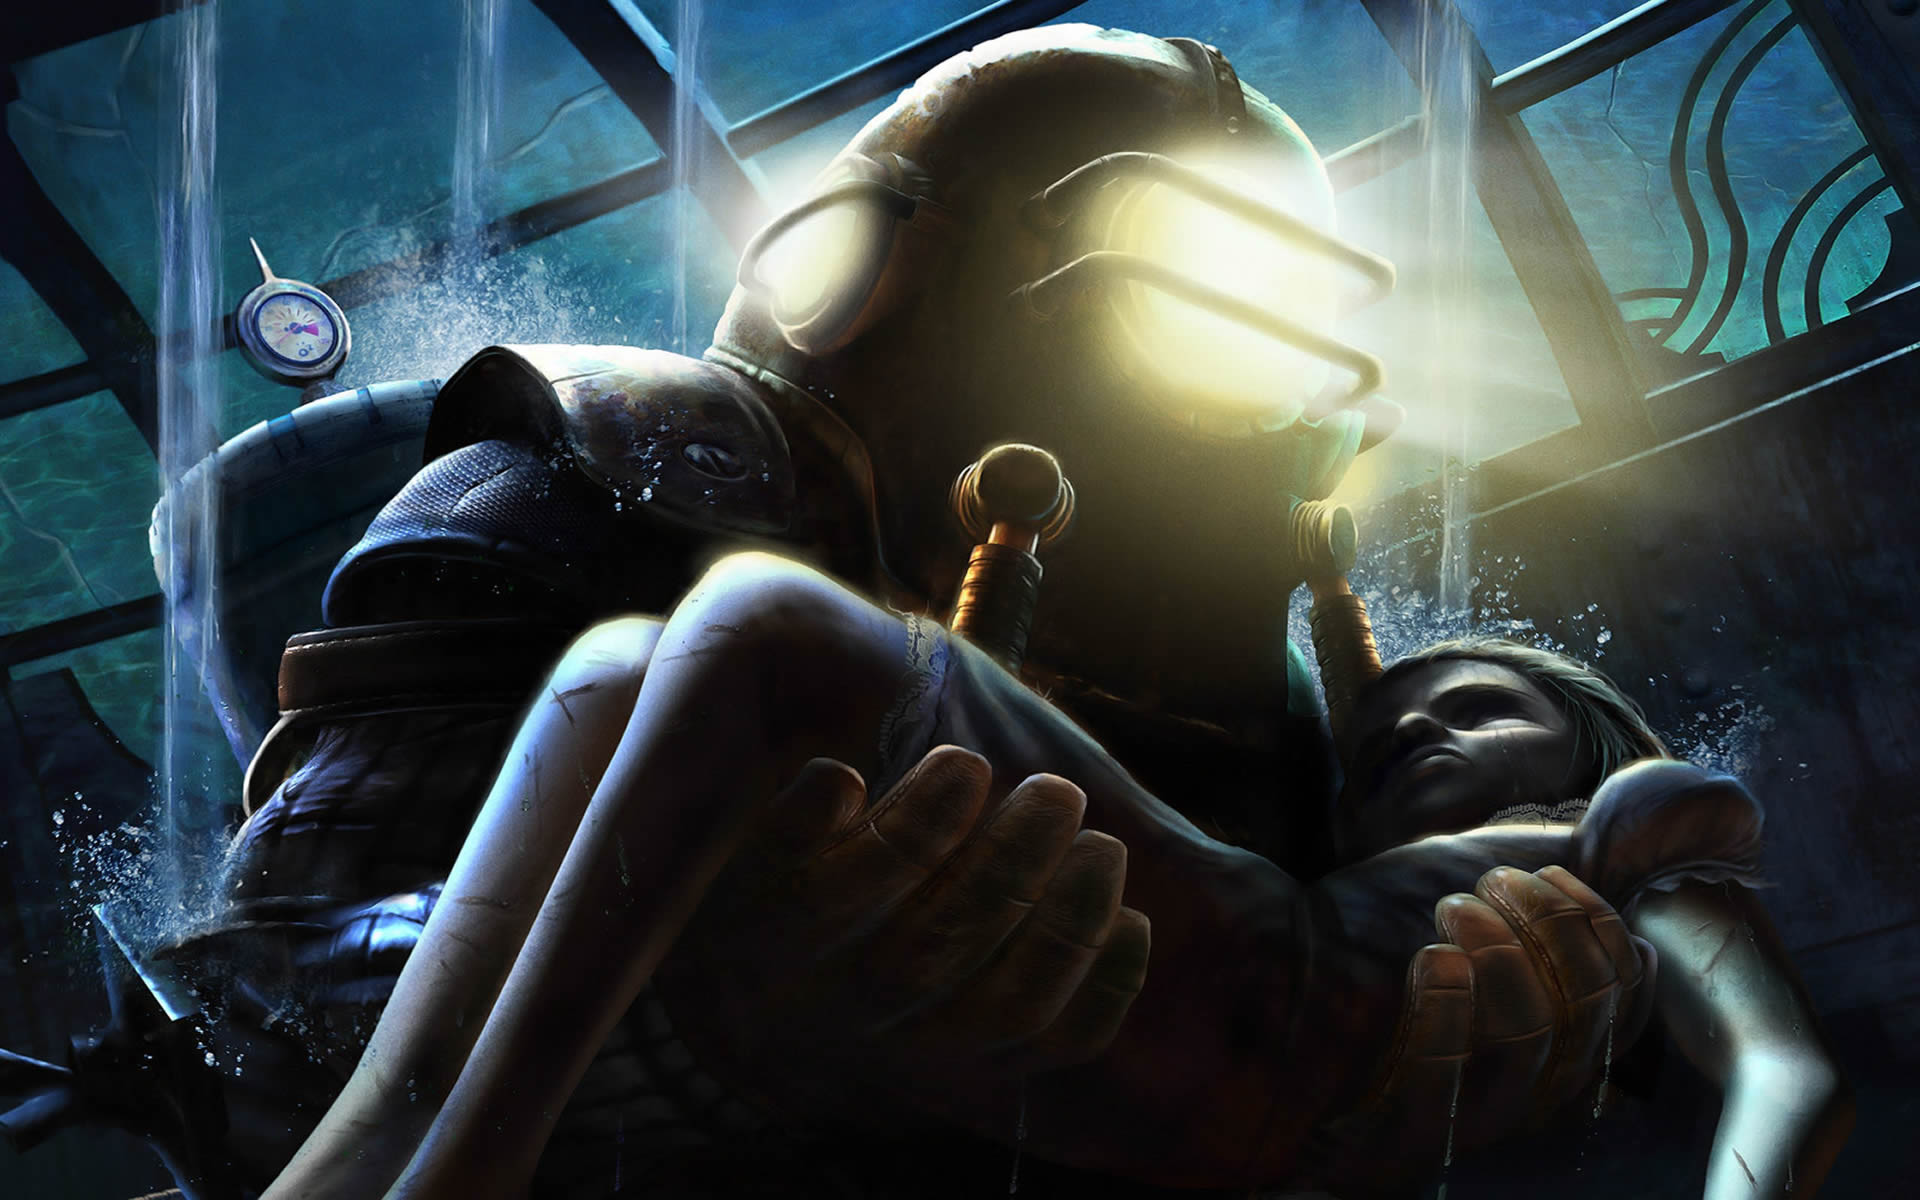 Previous Bioshock Wallpaper Big Daddy Carrying Little Sister